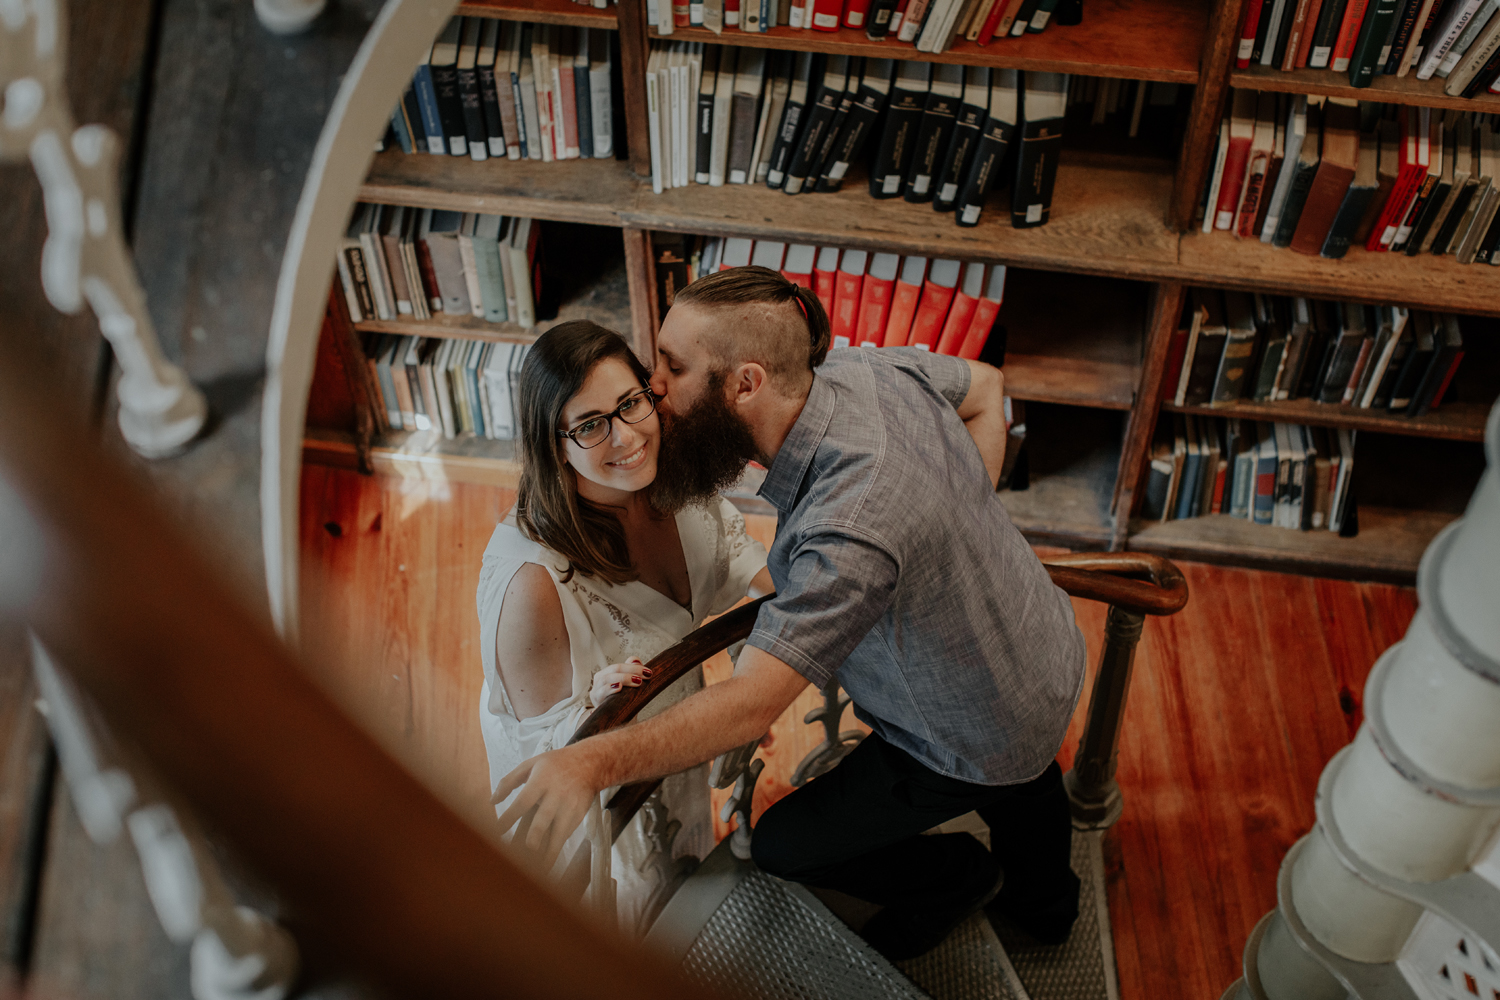 linderman-library-lehigh-valley-photography-engagement